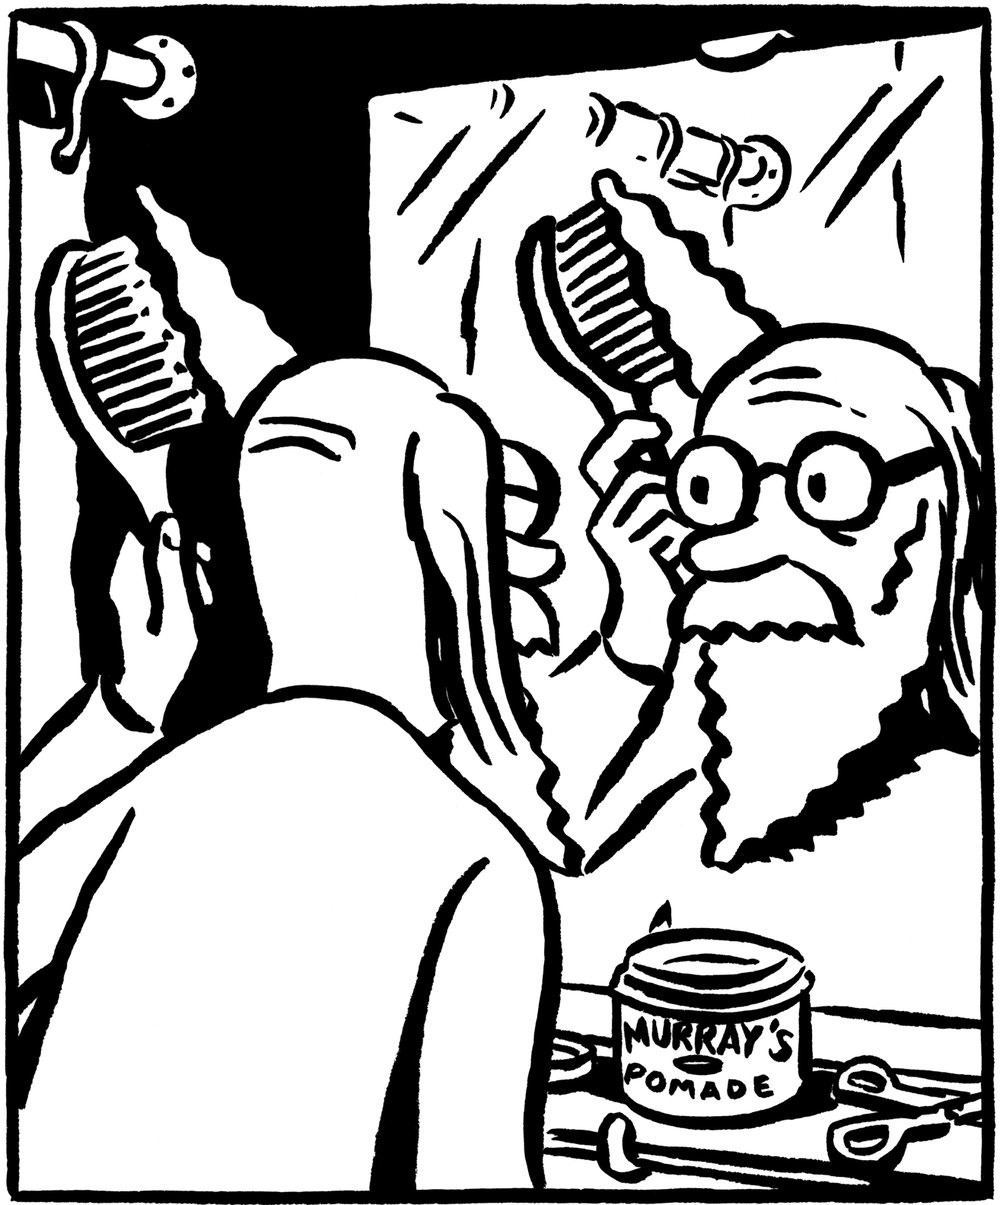 Panel from The Temptation of Nimbus.